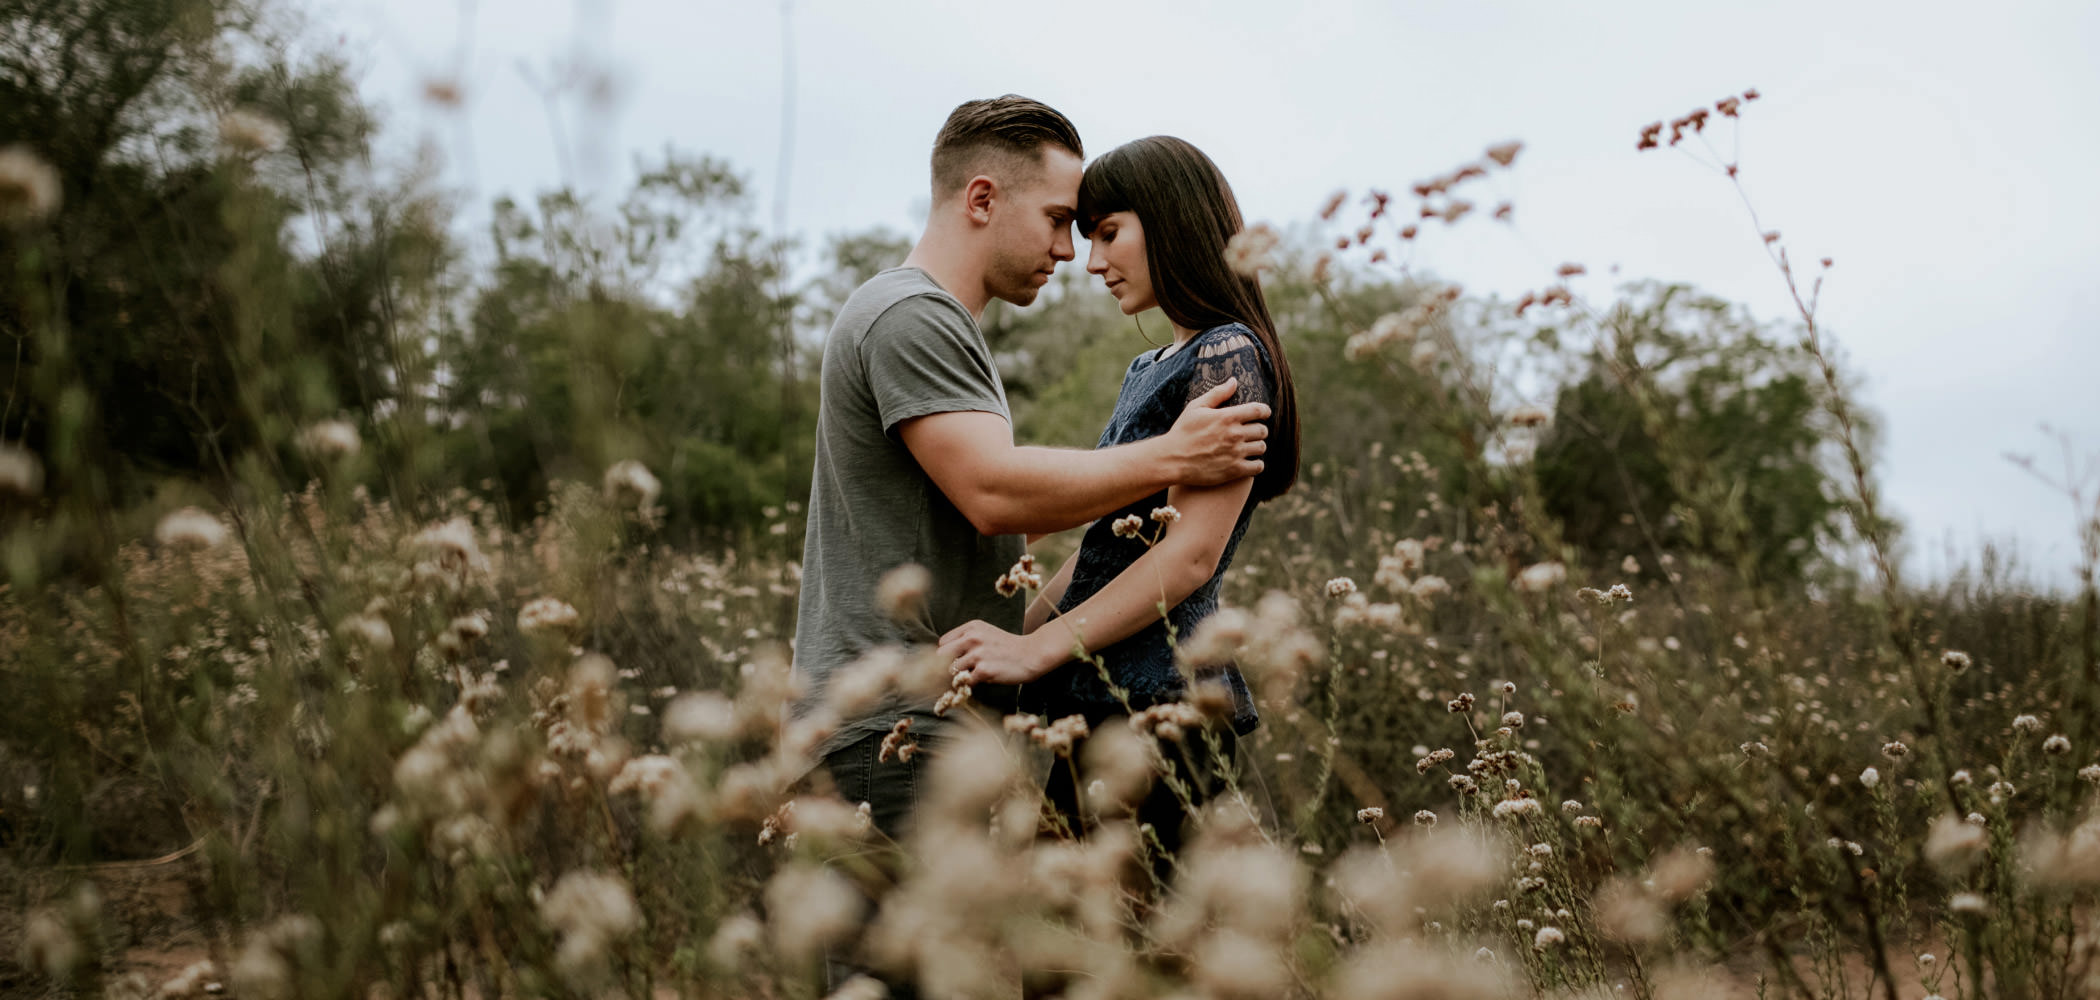 Couple holding each other in a field of wildflowers at Felicita Park in Escondido